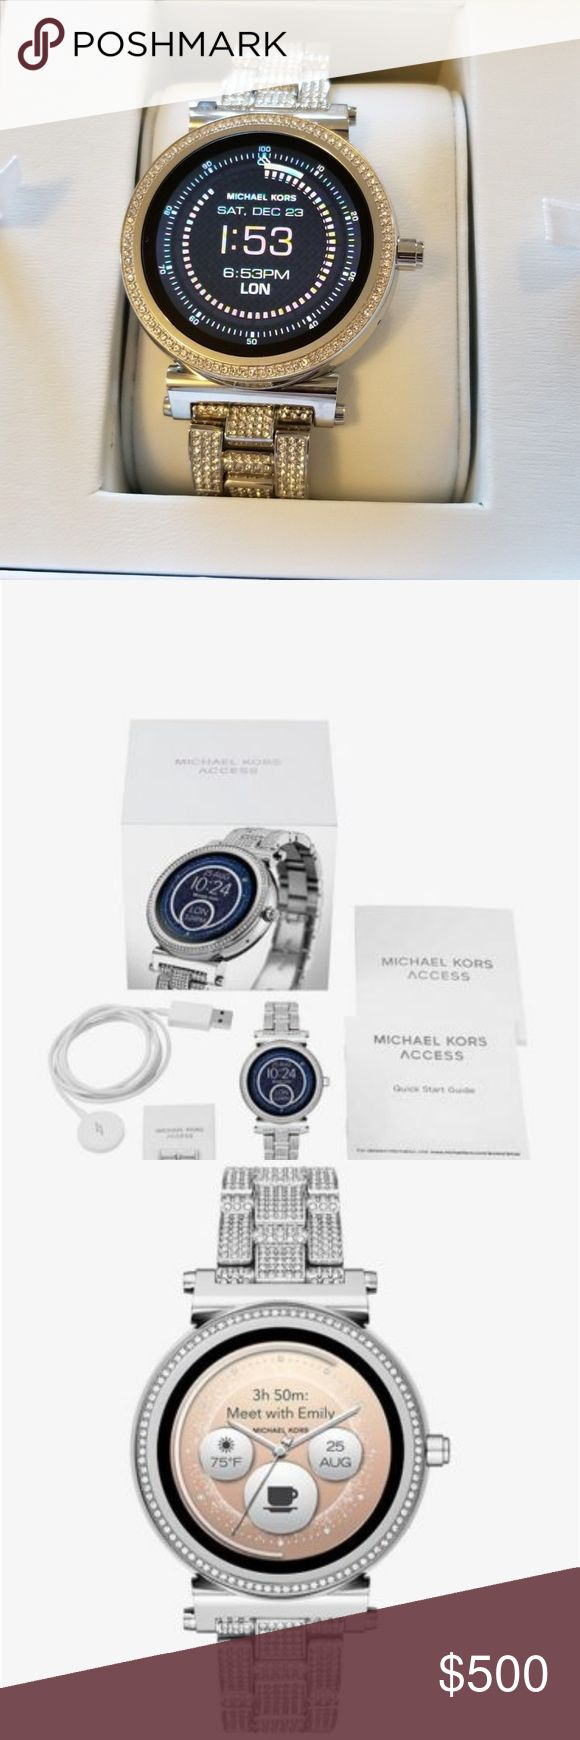 Michael Kors Sofie Pave Touchscreen Smartwatch Do not mistake this for the $395.00 version, it is not. Powered by Android Wear, the Michael Kors Access Sofie silvertone touchscreen smartwatch connects with your favorite apps and is compatible with iPhone and Android devices. With built-in Google Assistant, you can use voice control to ask questions & give commands. Receive notifications, such as calls & alerts at a glance as well. Fully personalize your watch by selecting or the watch face…